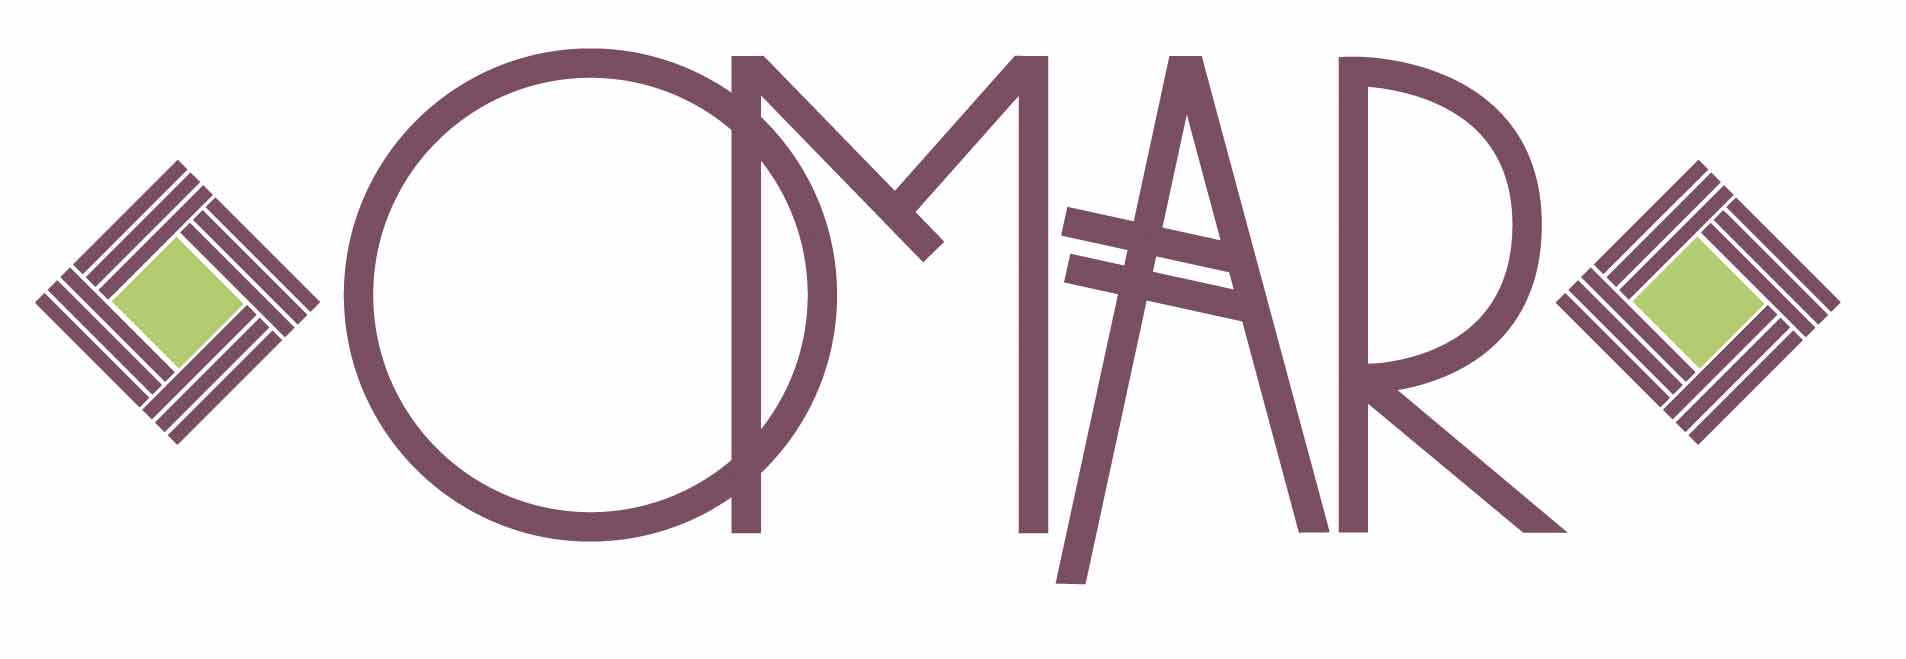 OMAR Baking Building Logo